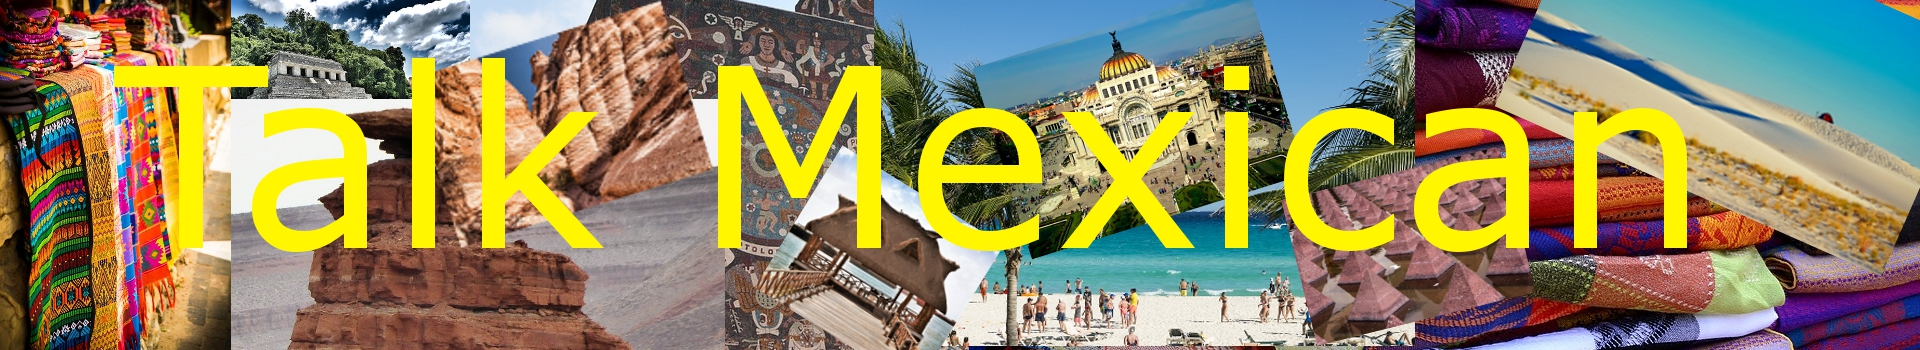 what is good morning in mexican language?